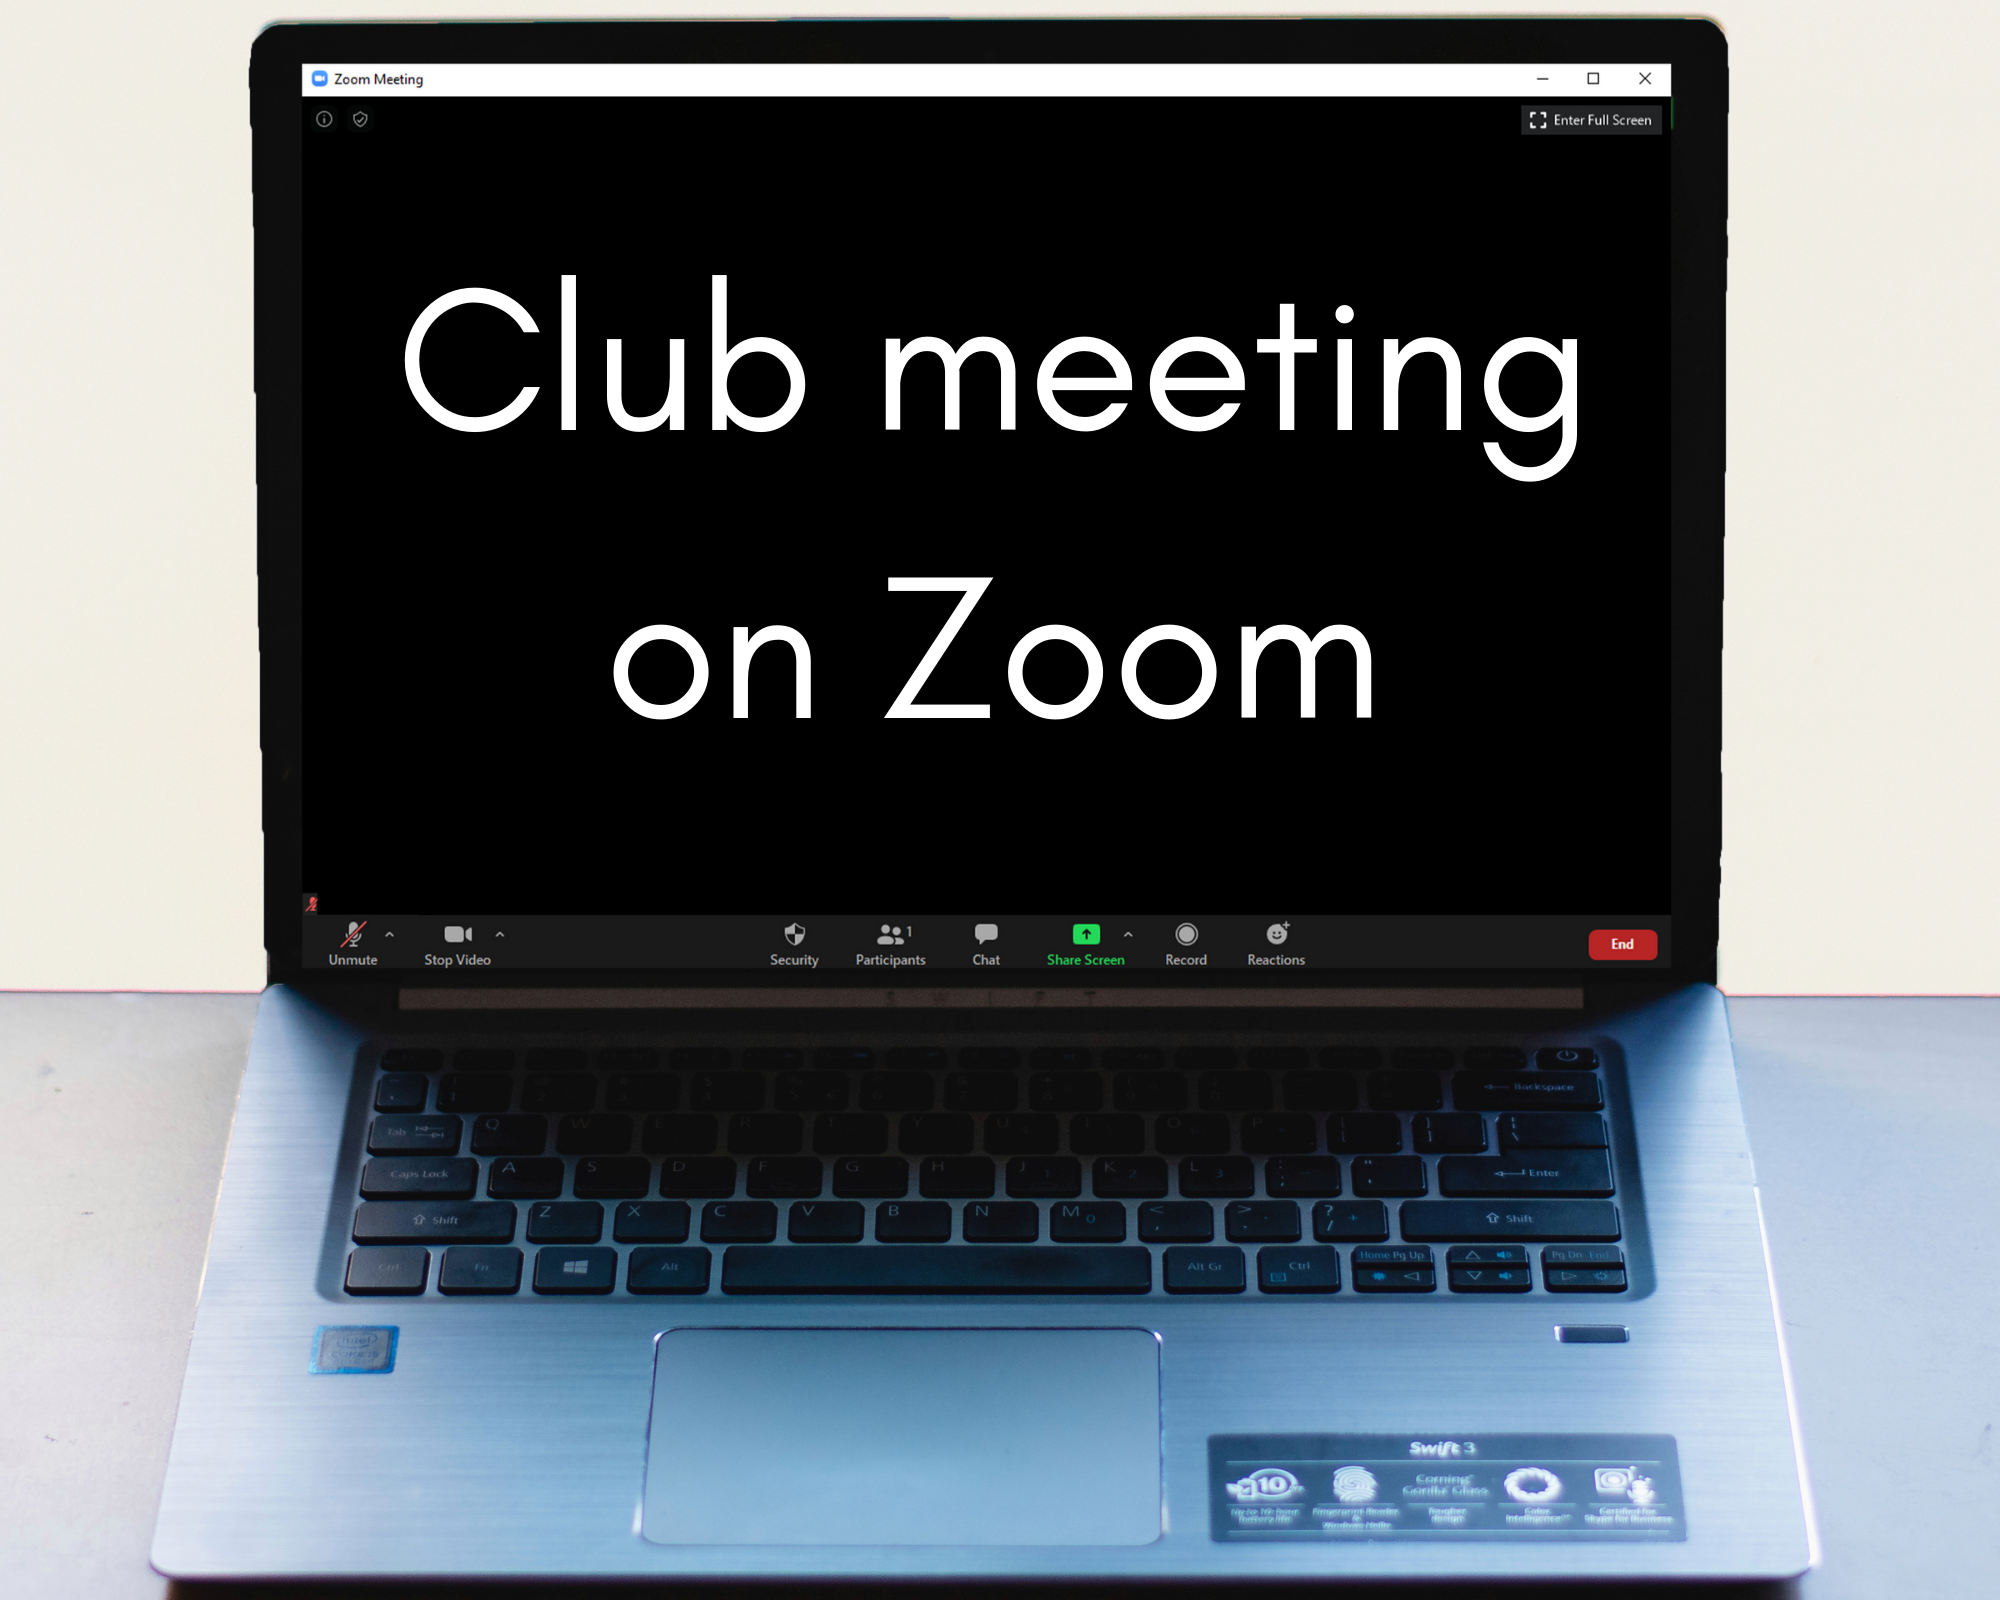 Clubs connect on computers